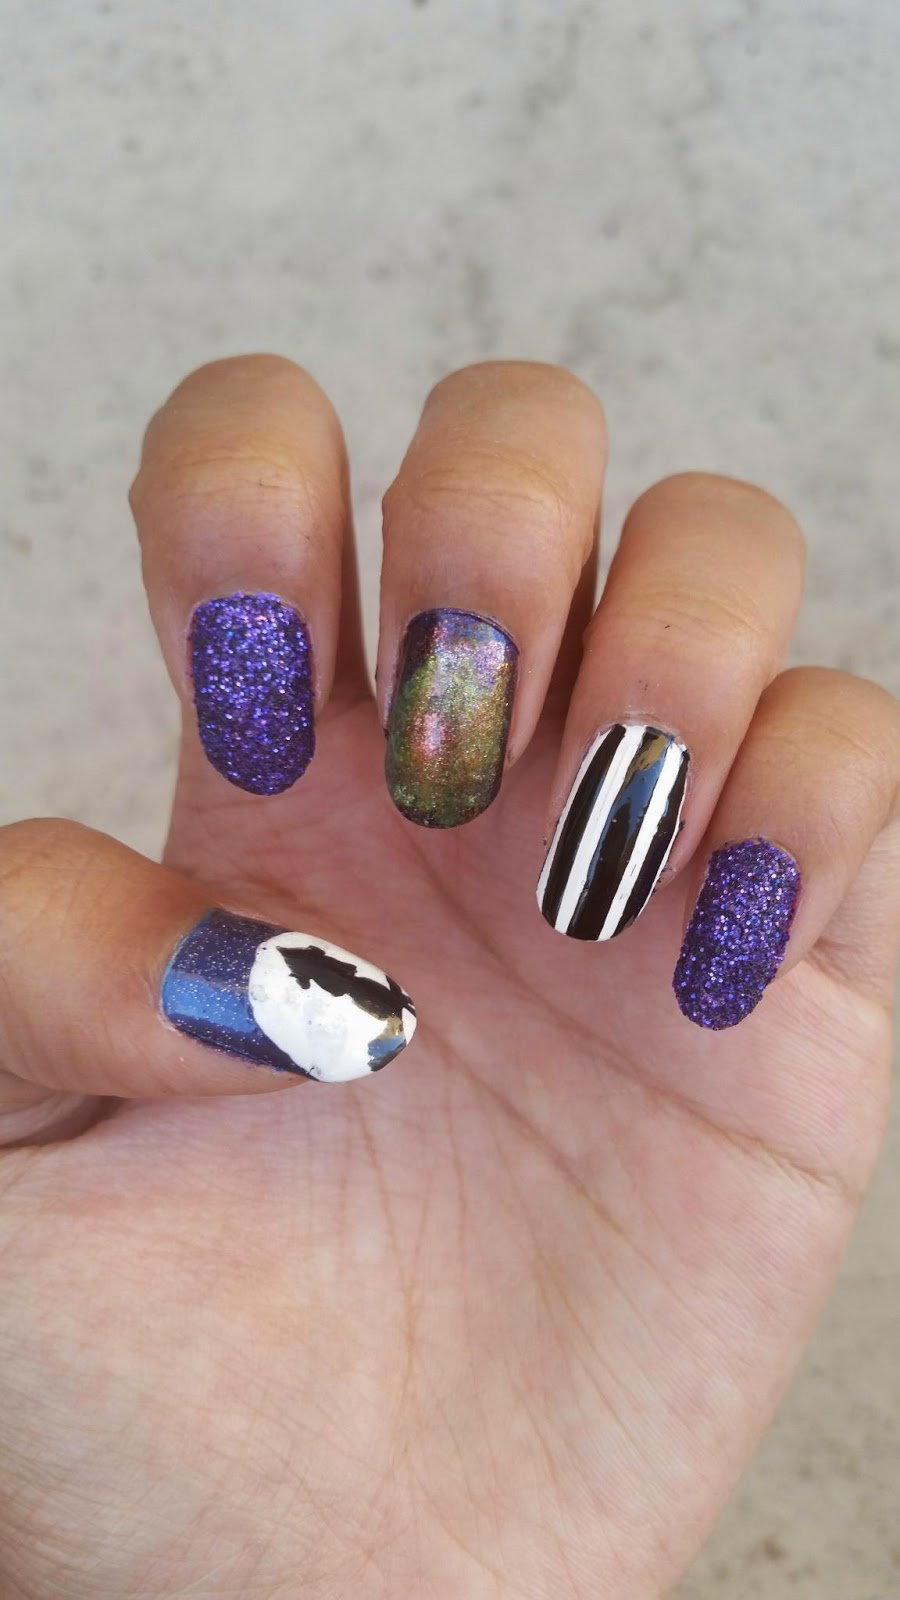 arielle's nail stuffs: halloween nails #1 a witchy night